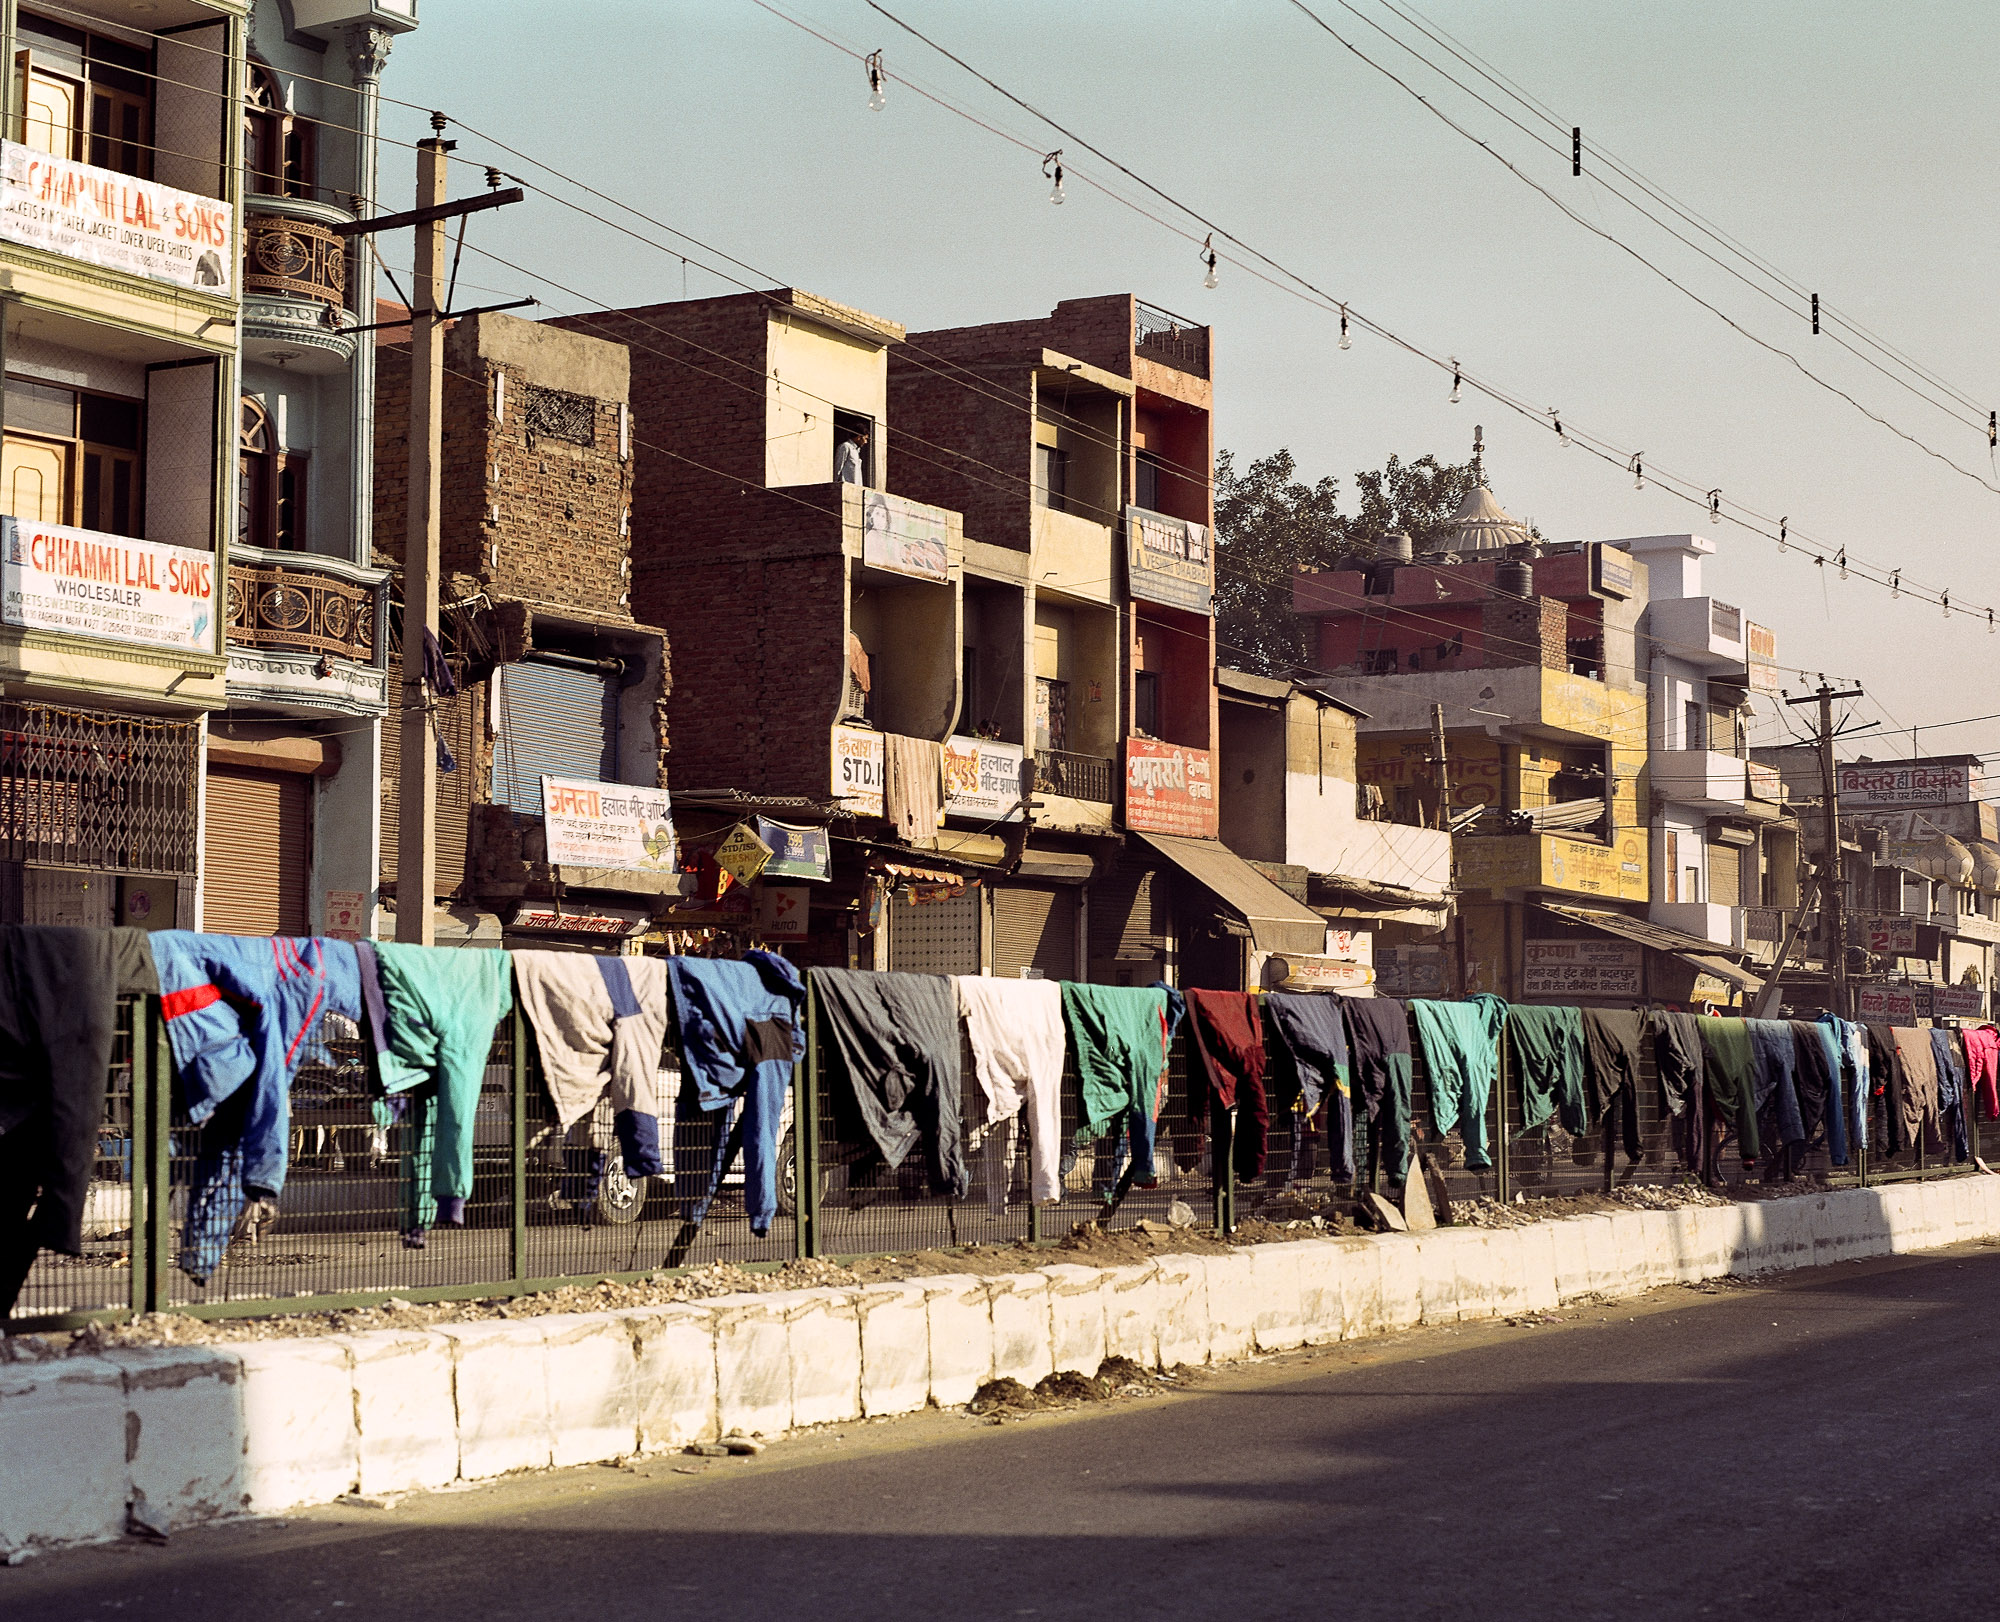 The local area is swathed with drying washing, festooning houses, draping over road barriers and strung across patches of wasteland.